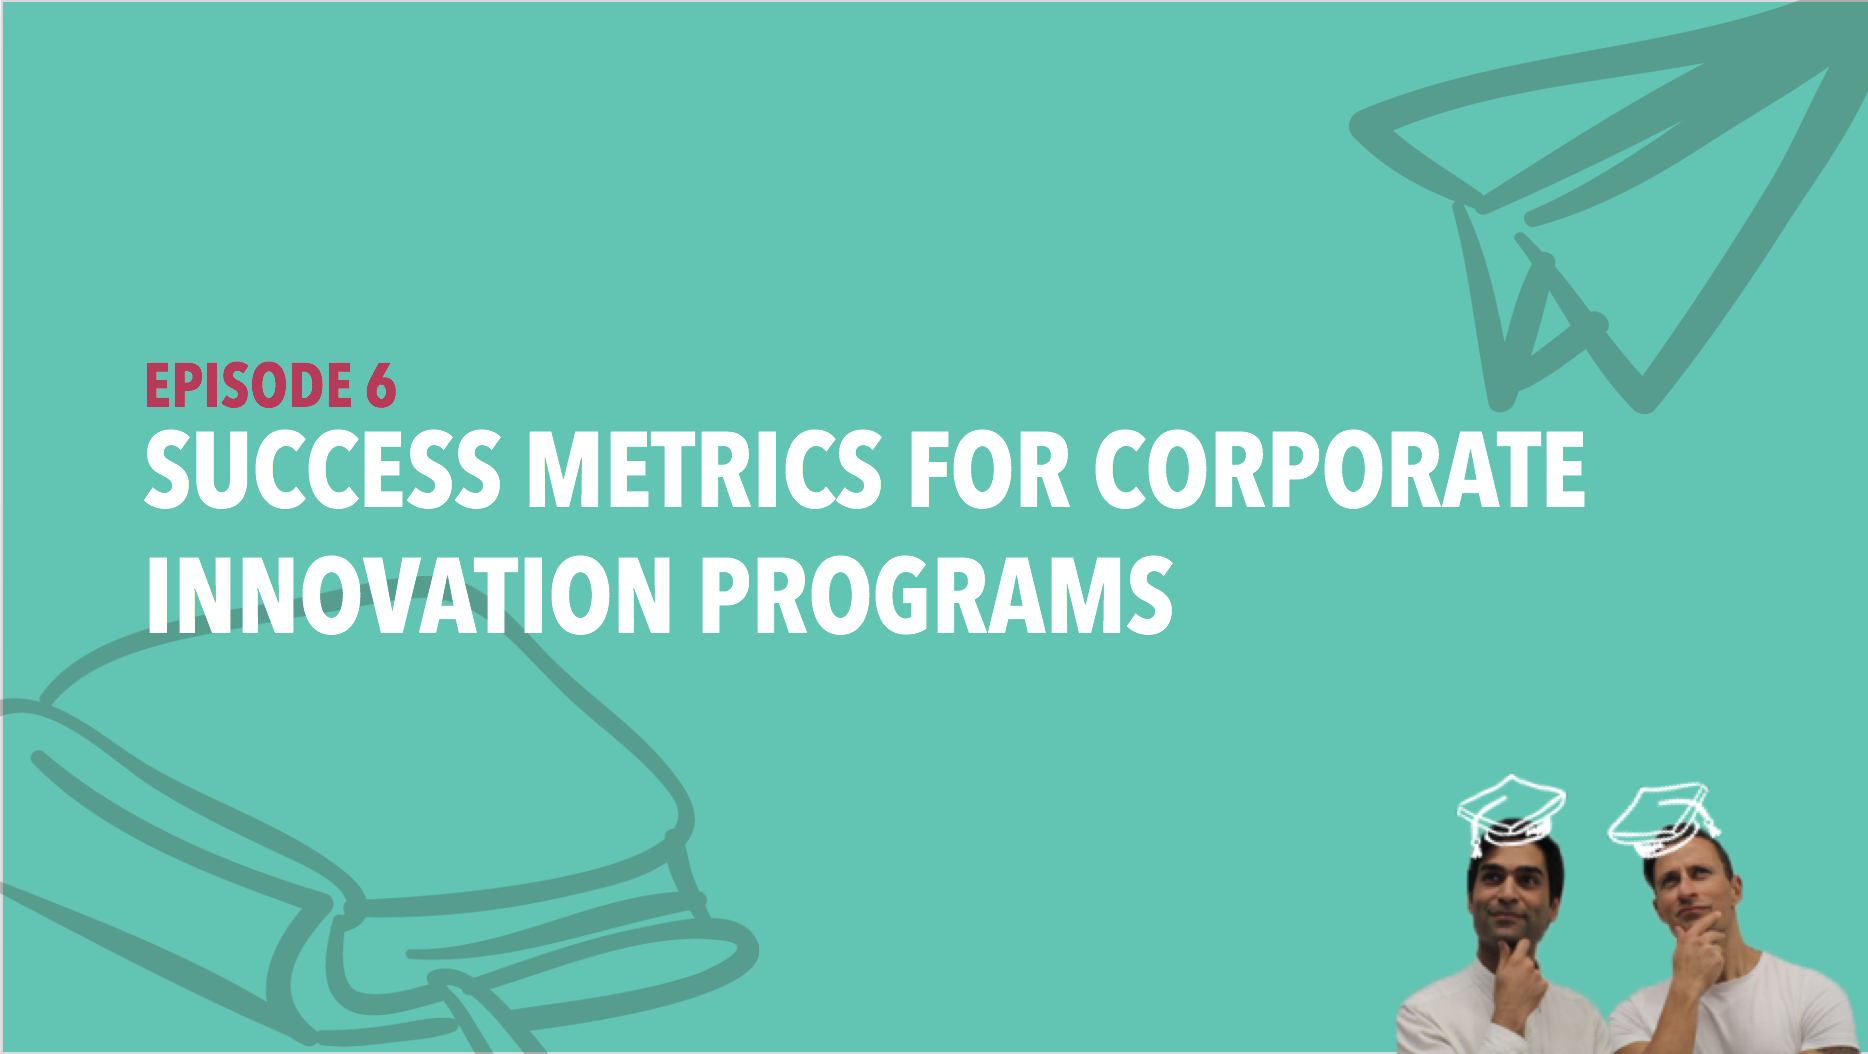 CiSchool Episode #006: Success metrics for corporate innovation programs